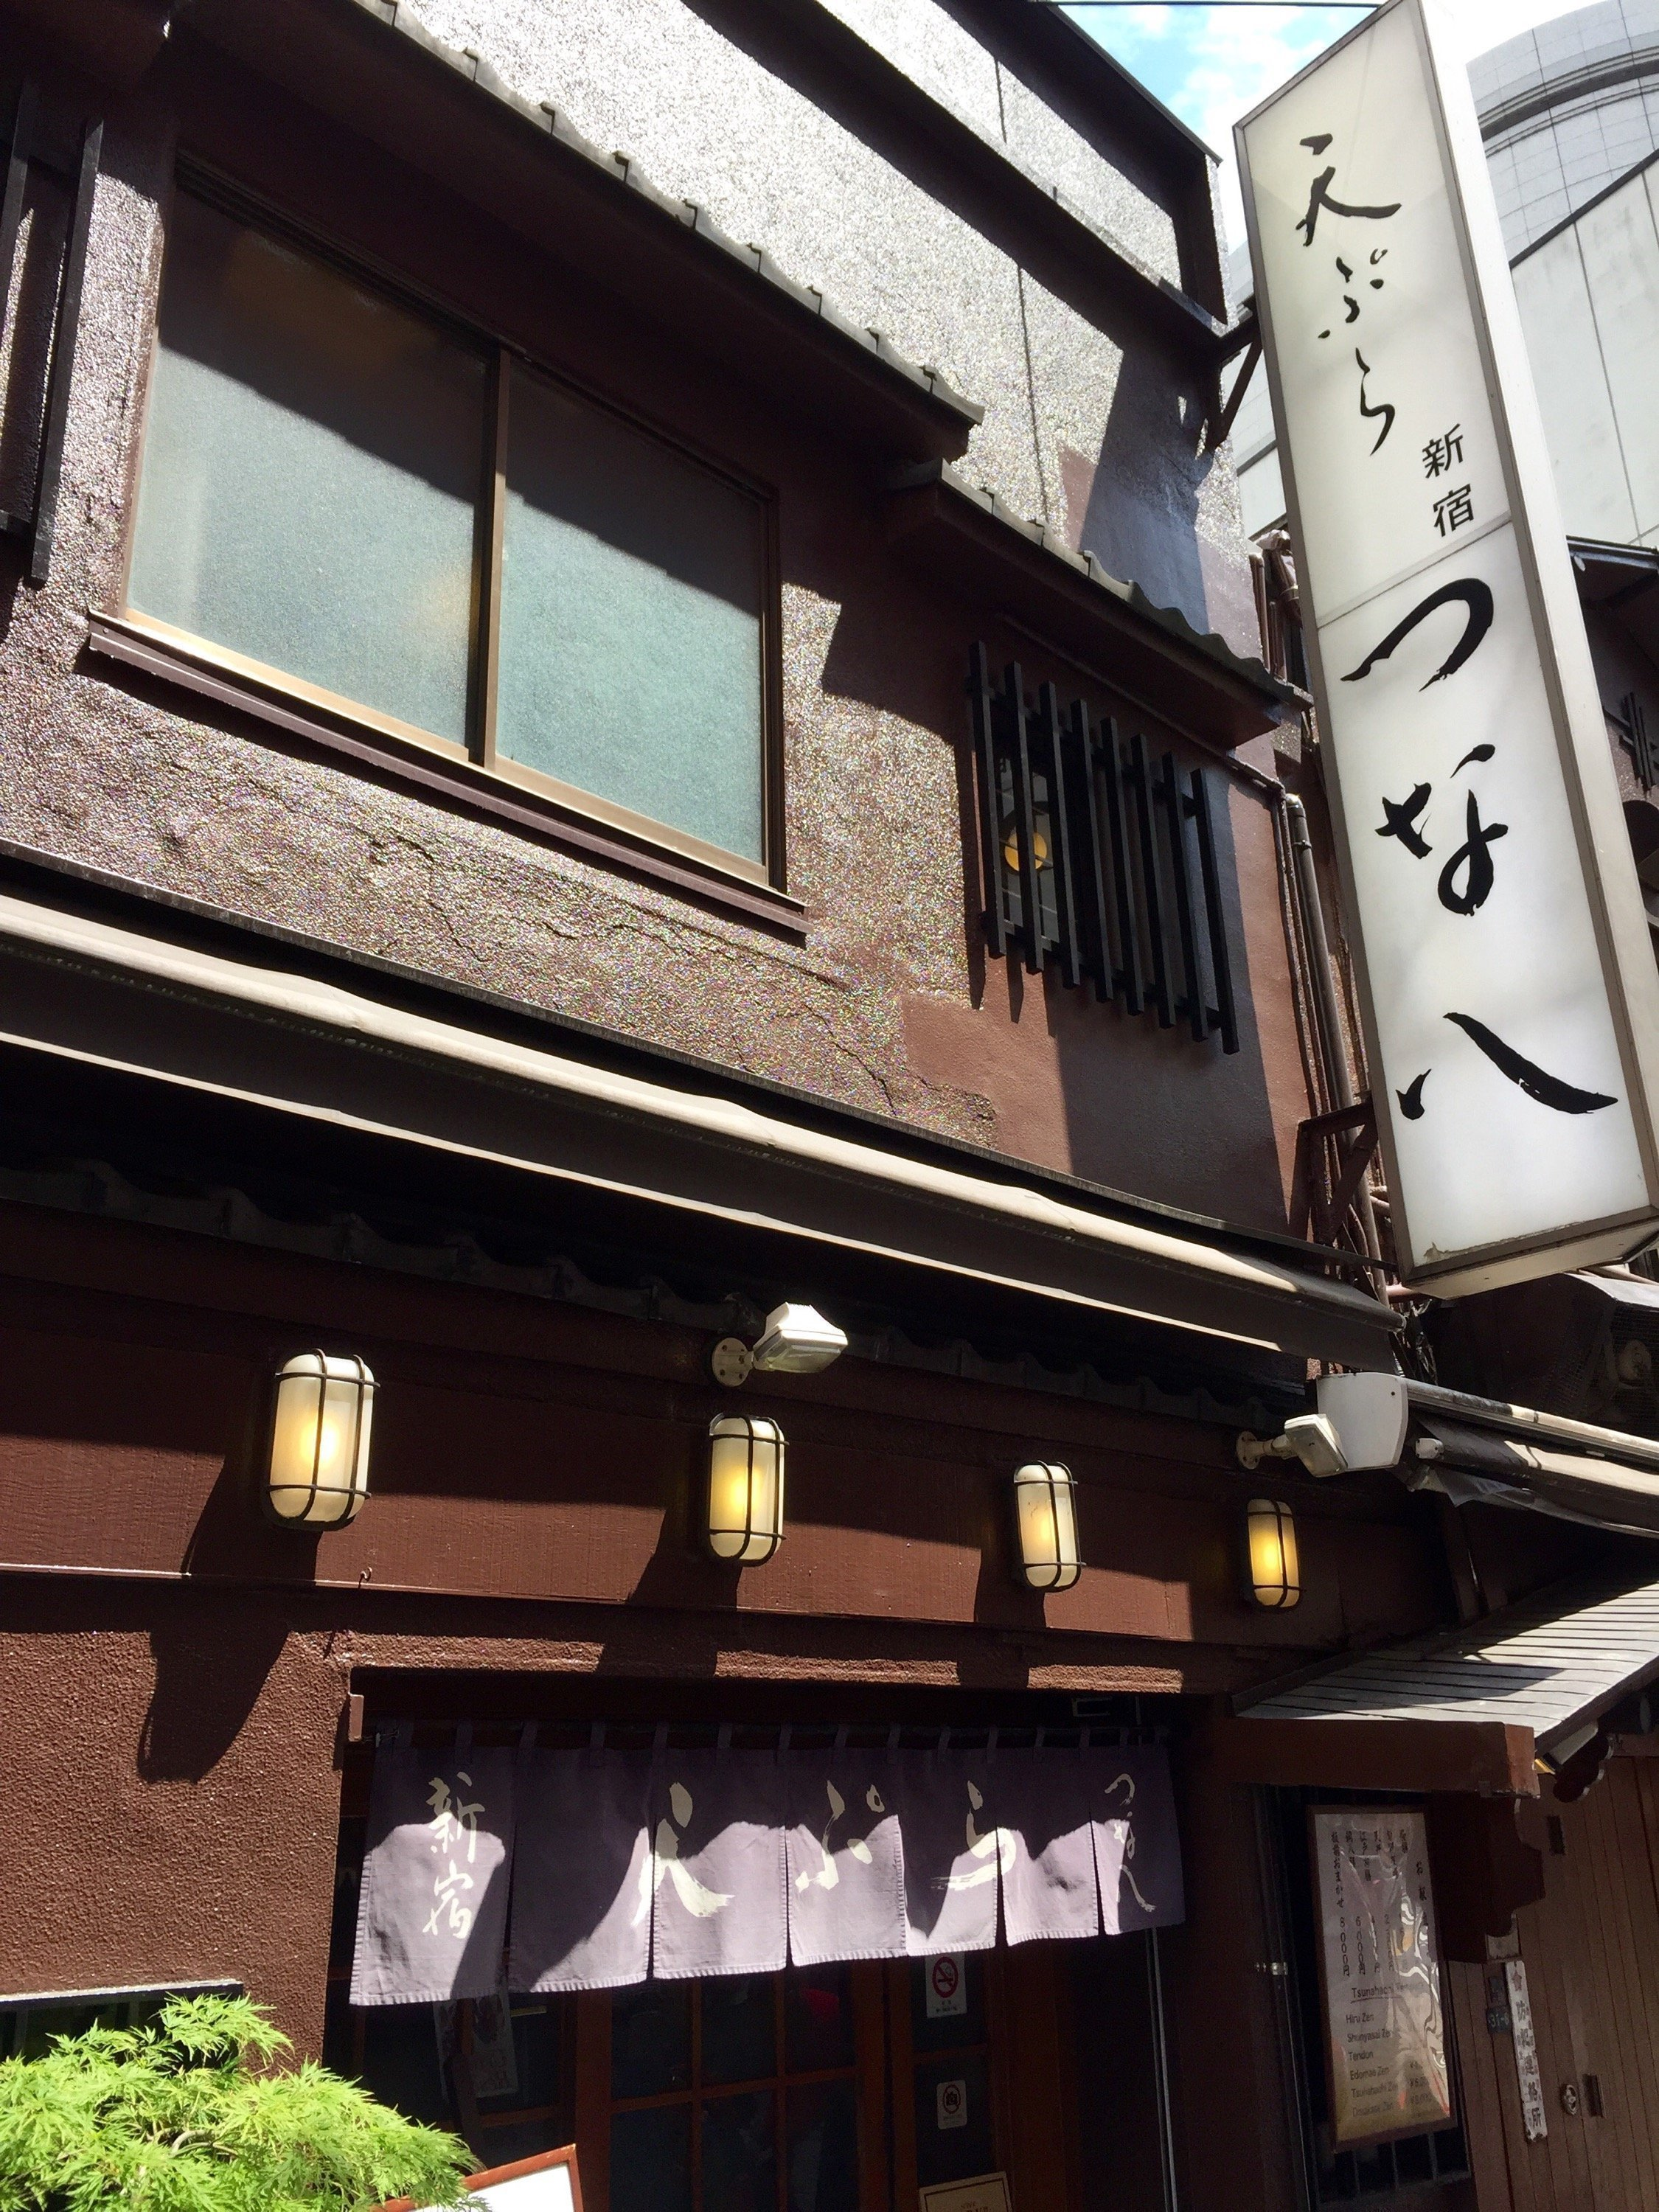 Tsunahachi - One of the Best Tempura Restaurants in Japan